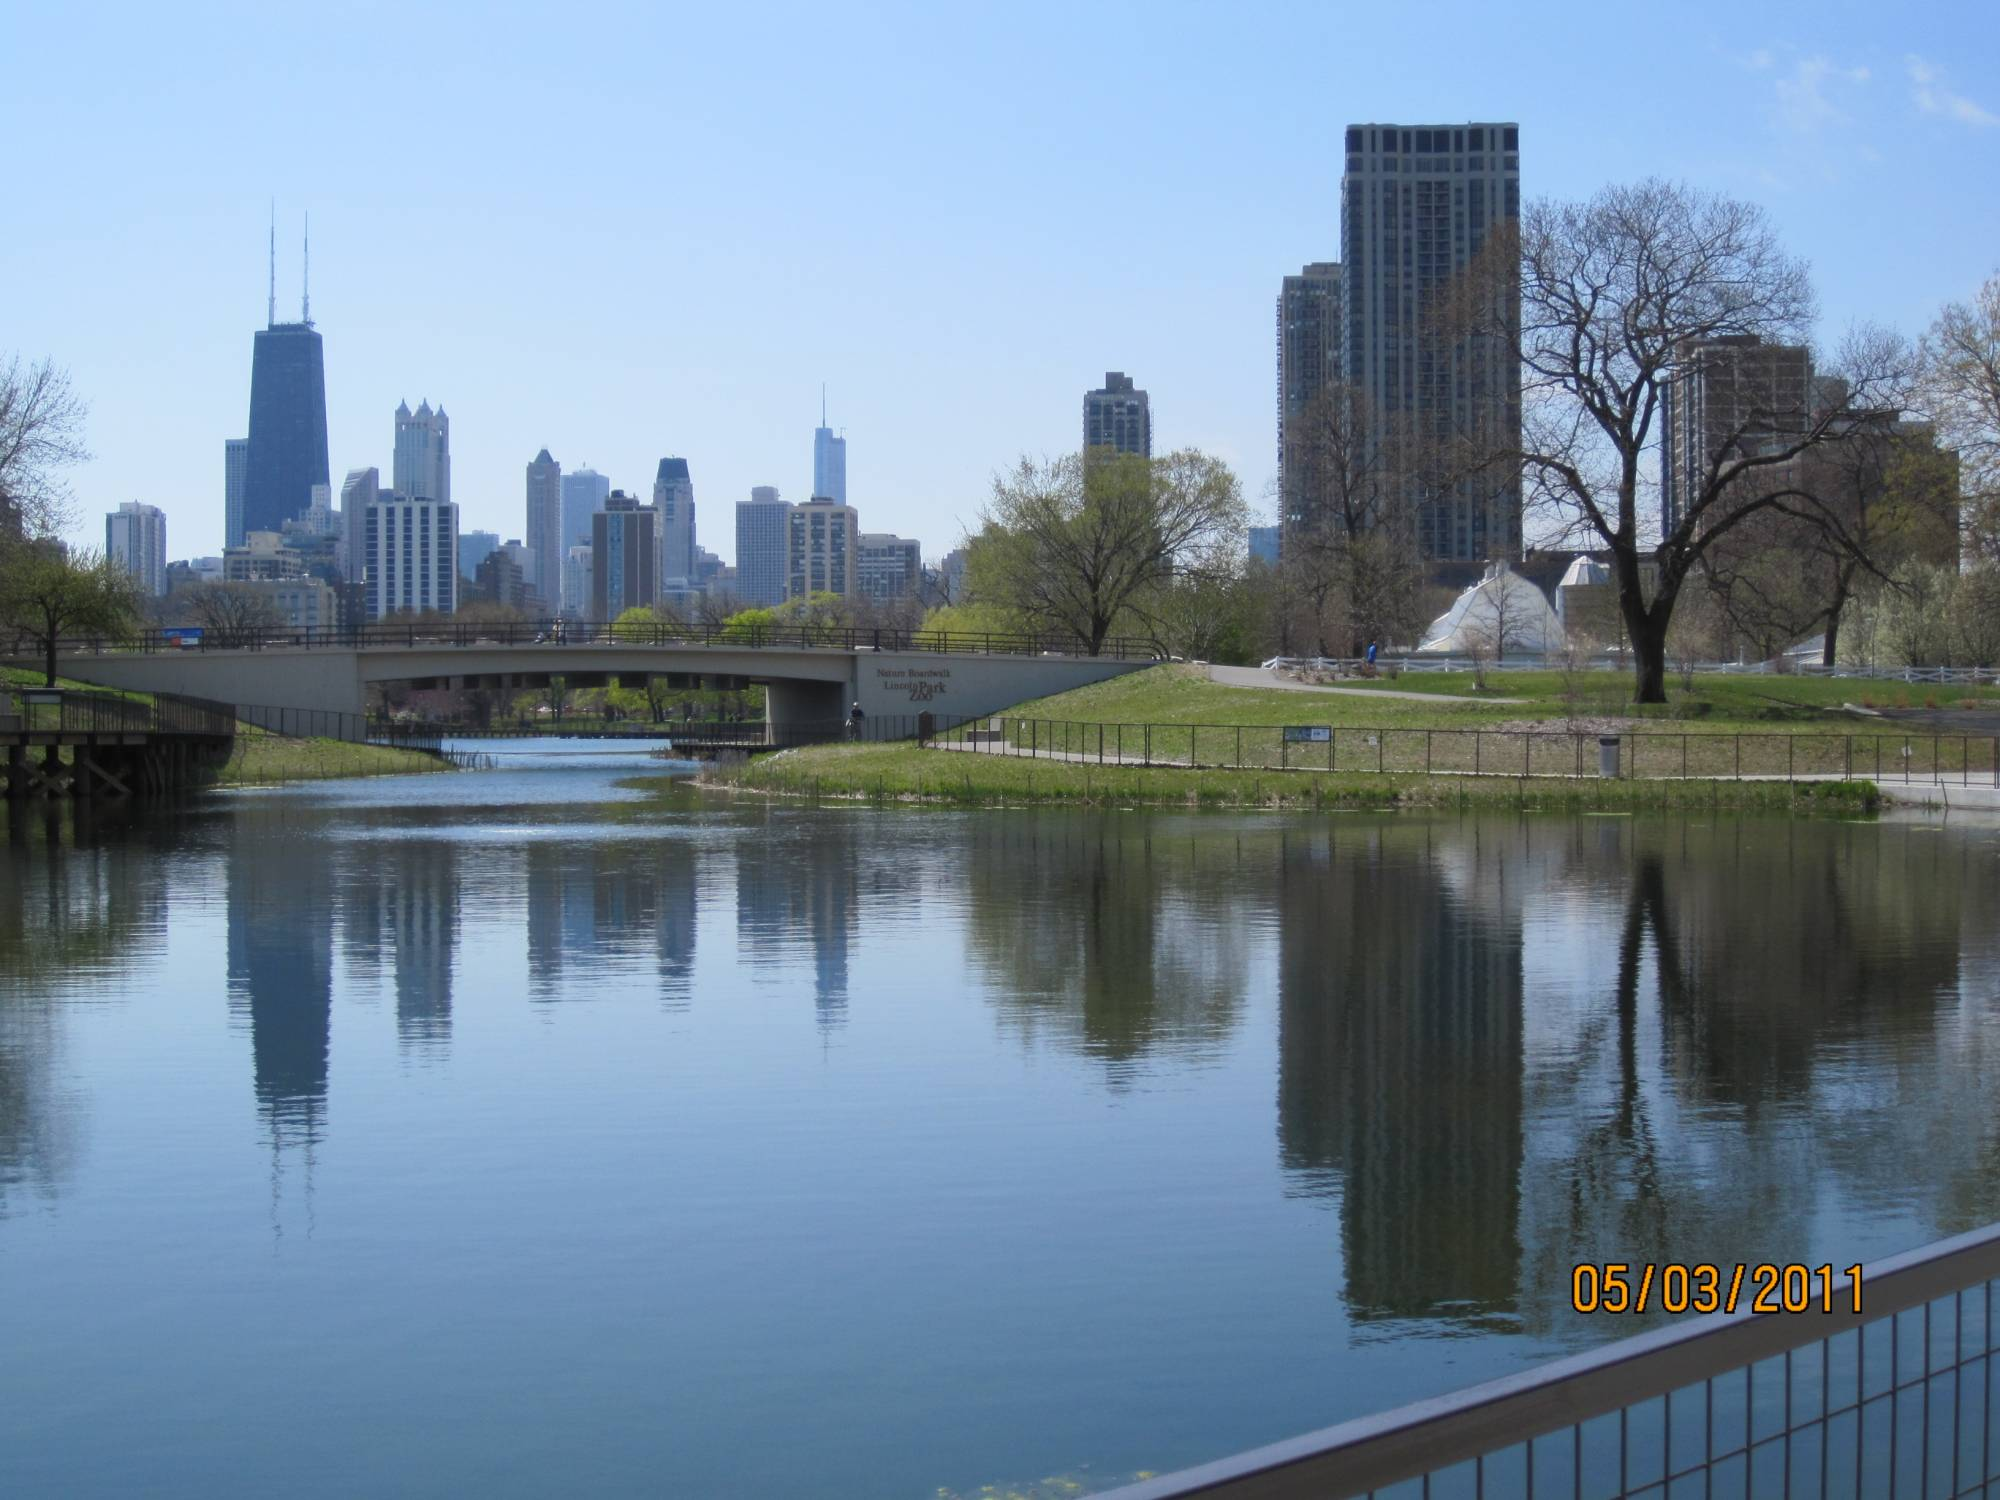 Chicago, Illinois - a View of DT Chicago from the Zoo